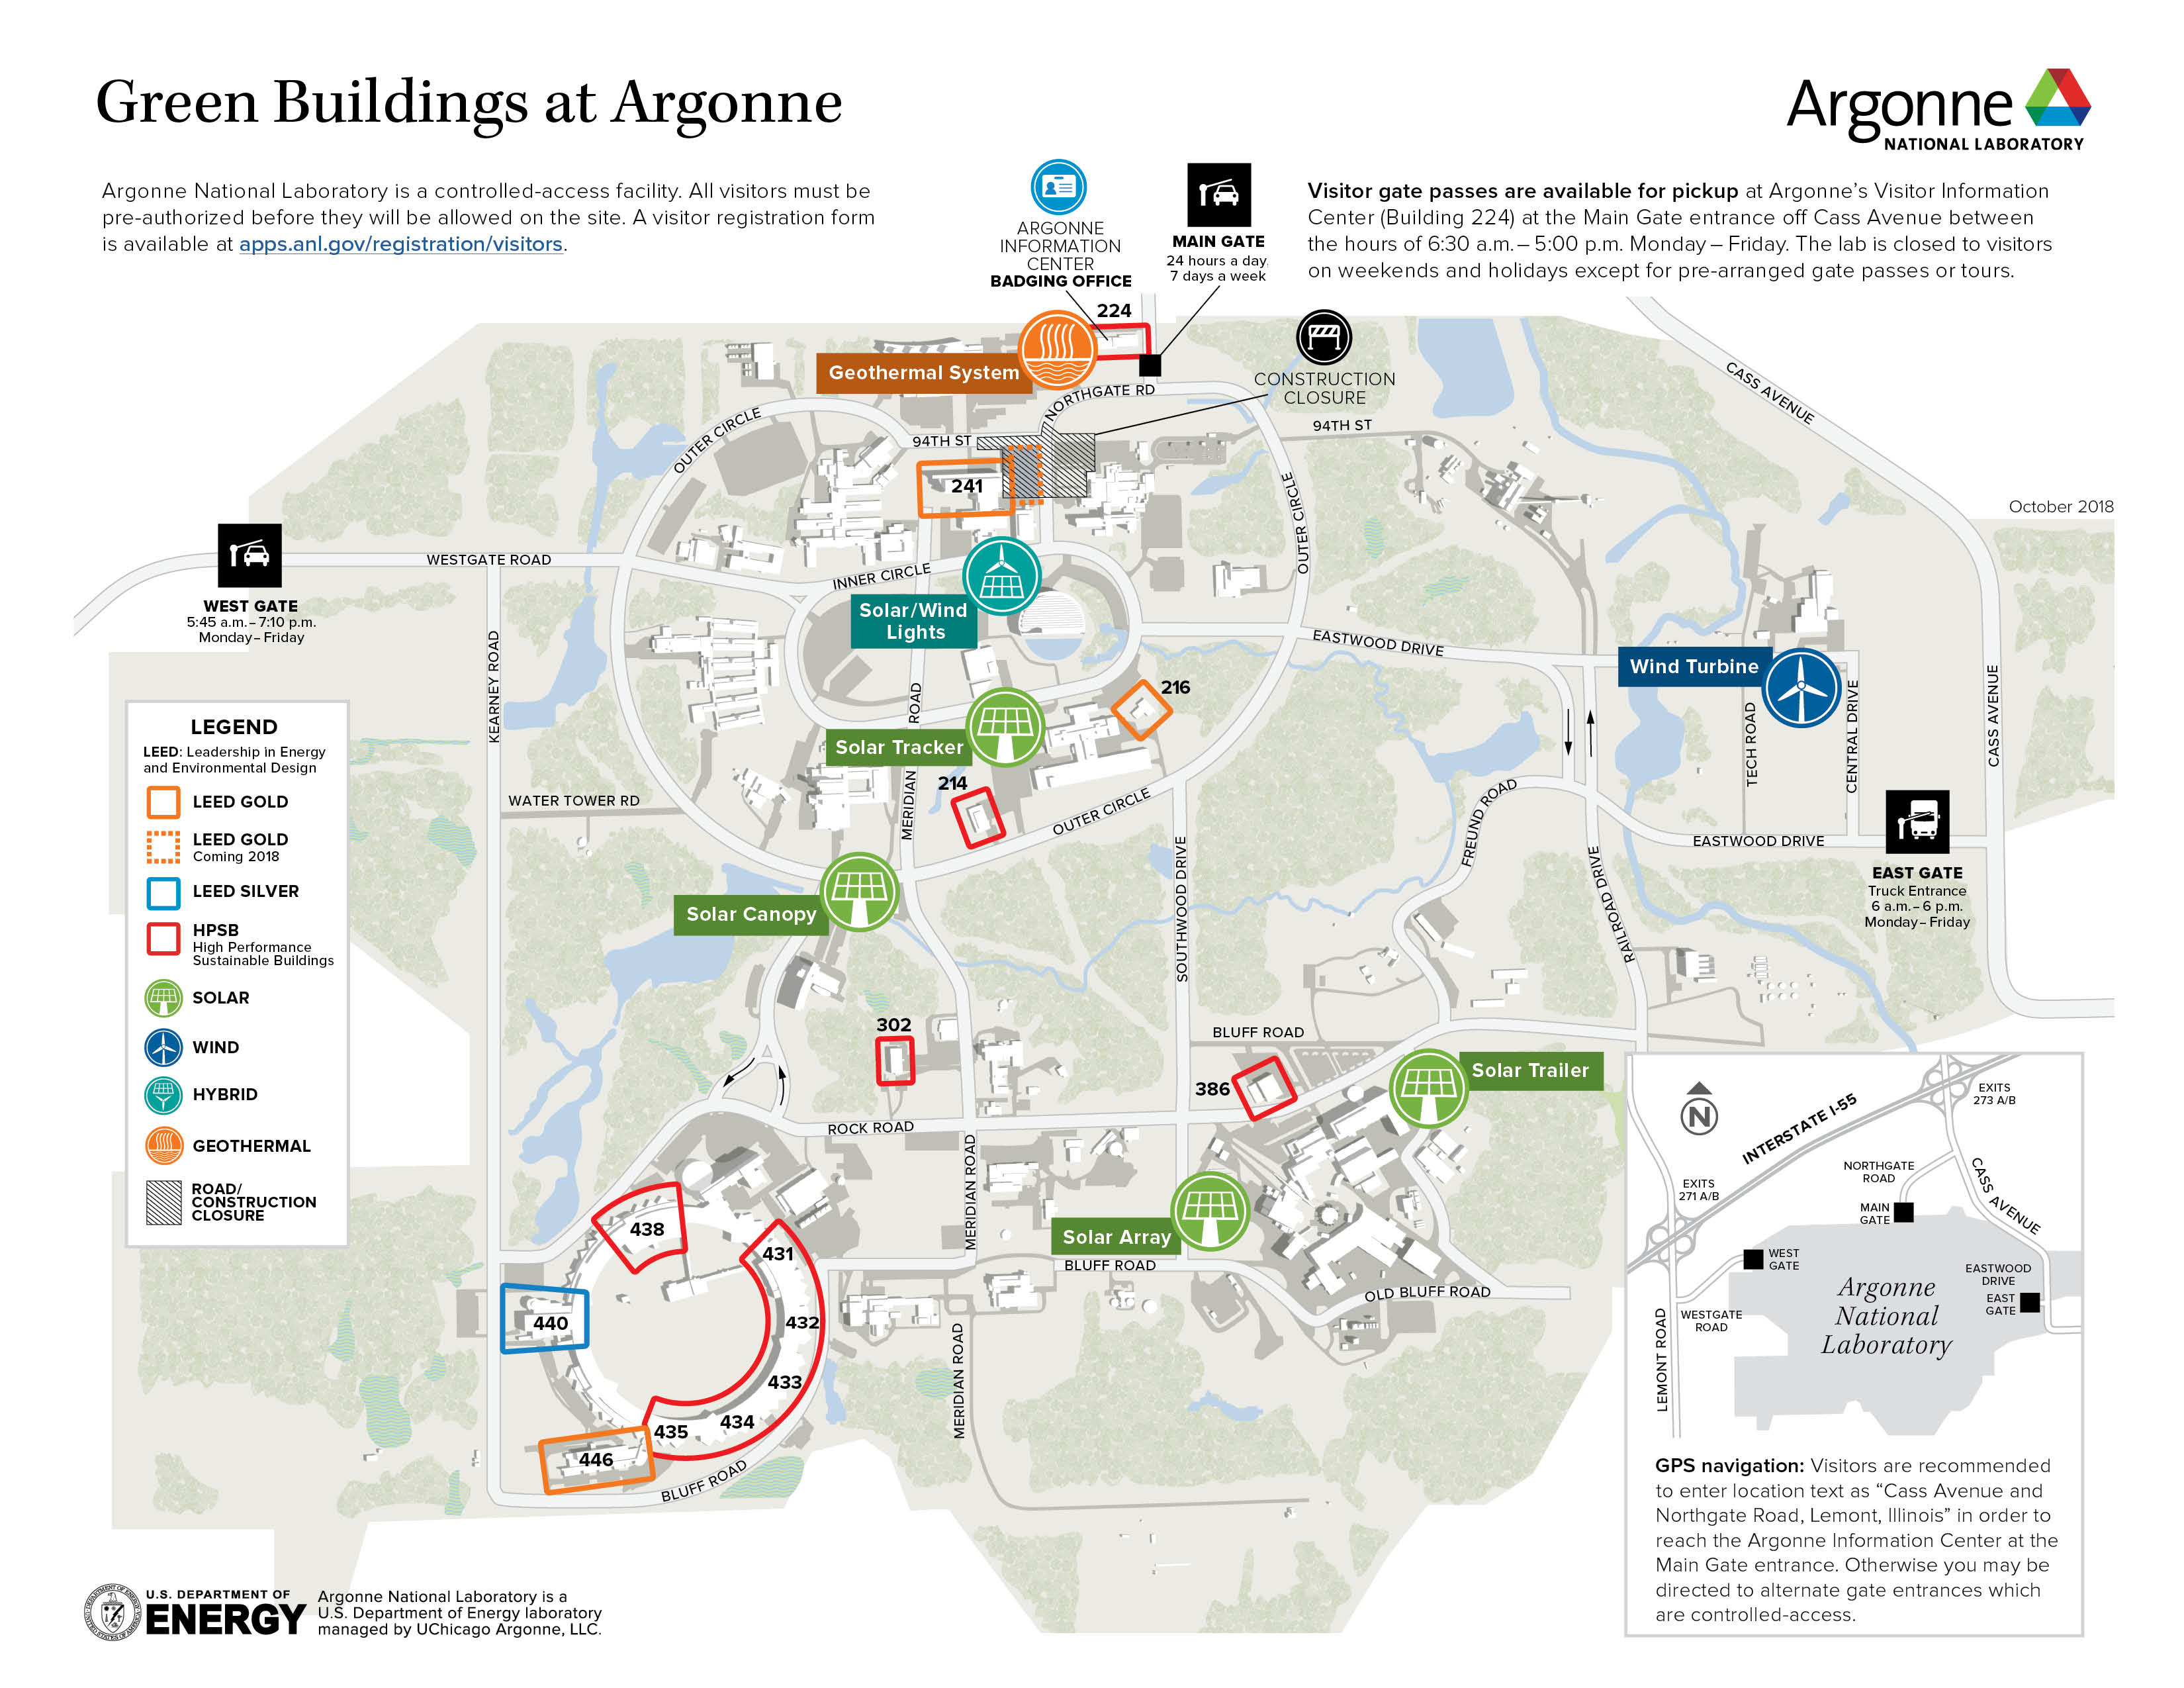 Green Buildings at Argonne National Laboratory